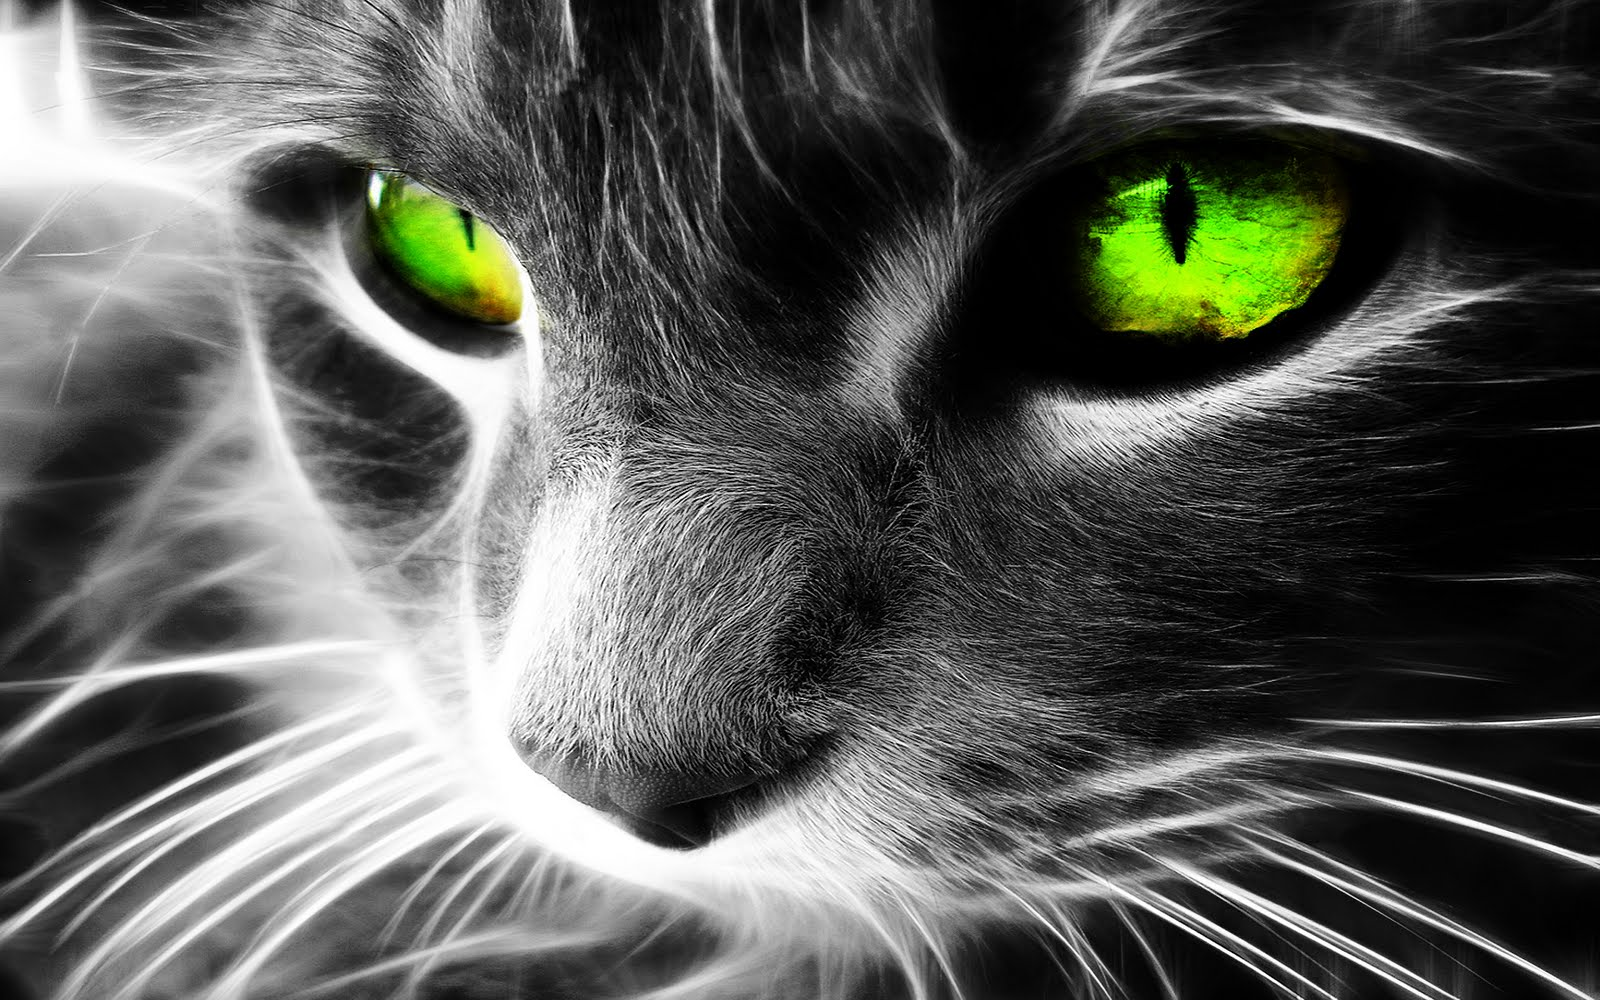 Gallery For gt Black And White Cat With Green Eyes Kitten